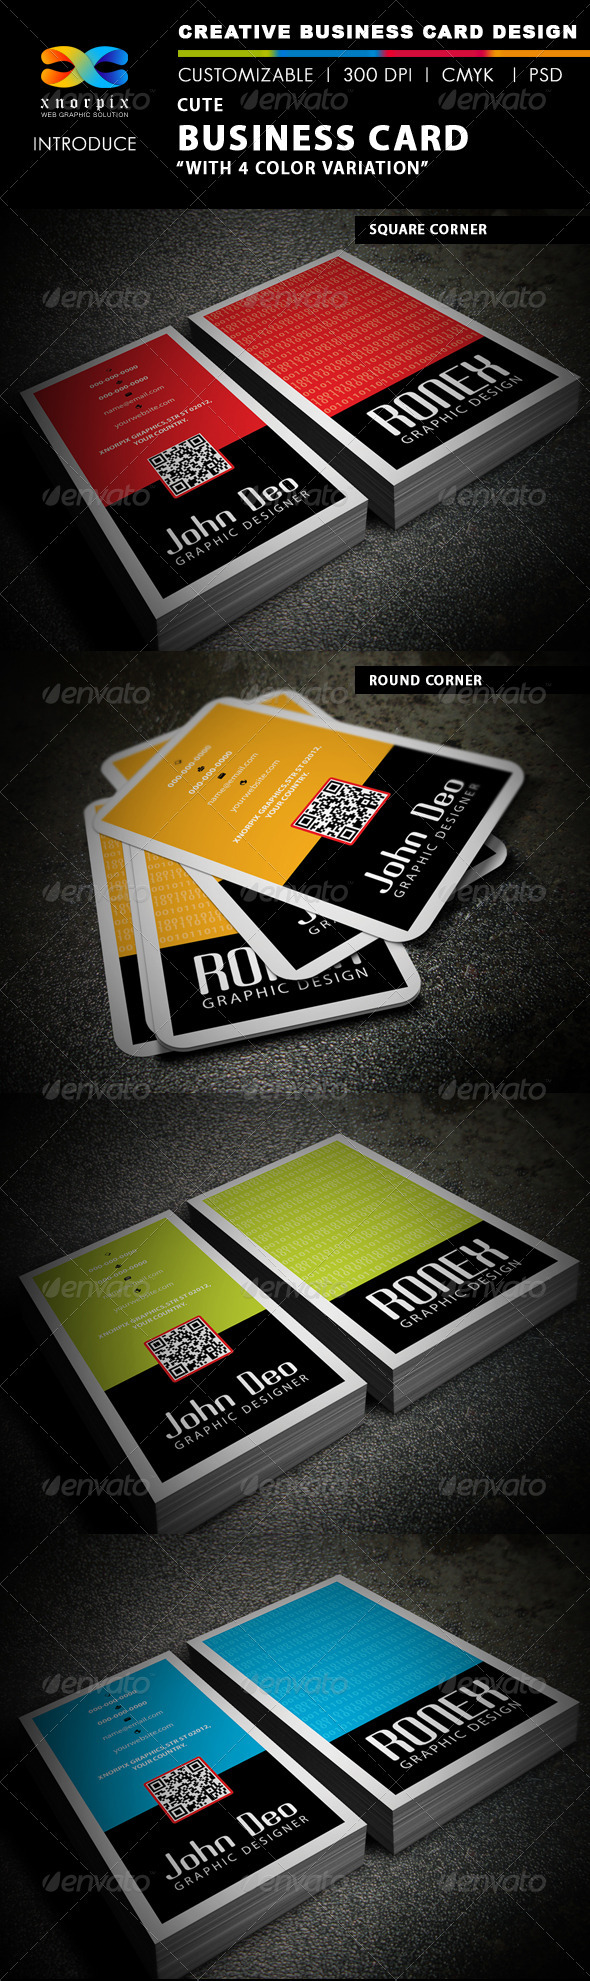 Cute Business Card - Creative Business Cards